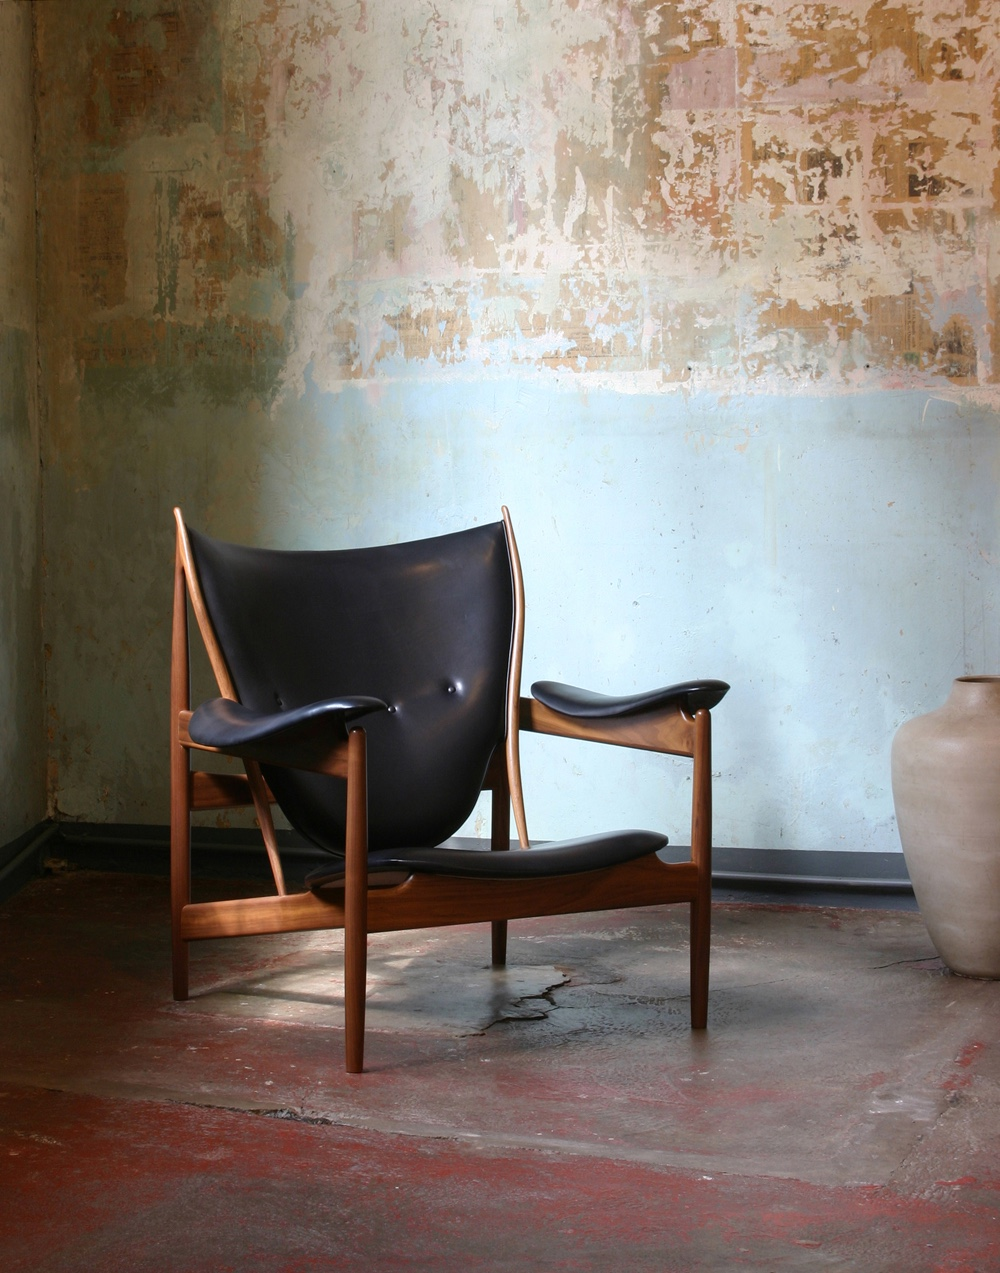 The Chieftains Chair, designed by Finn Juhl in 1949. Image © 2016 House of FinnJuhl™.